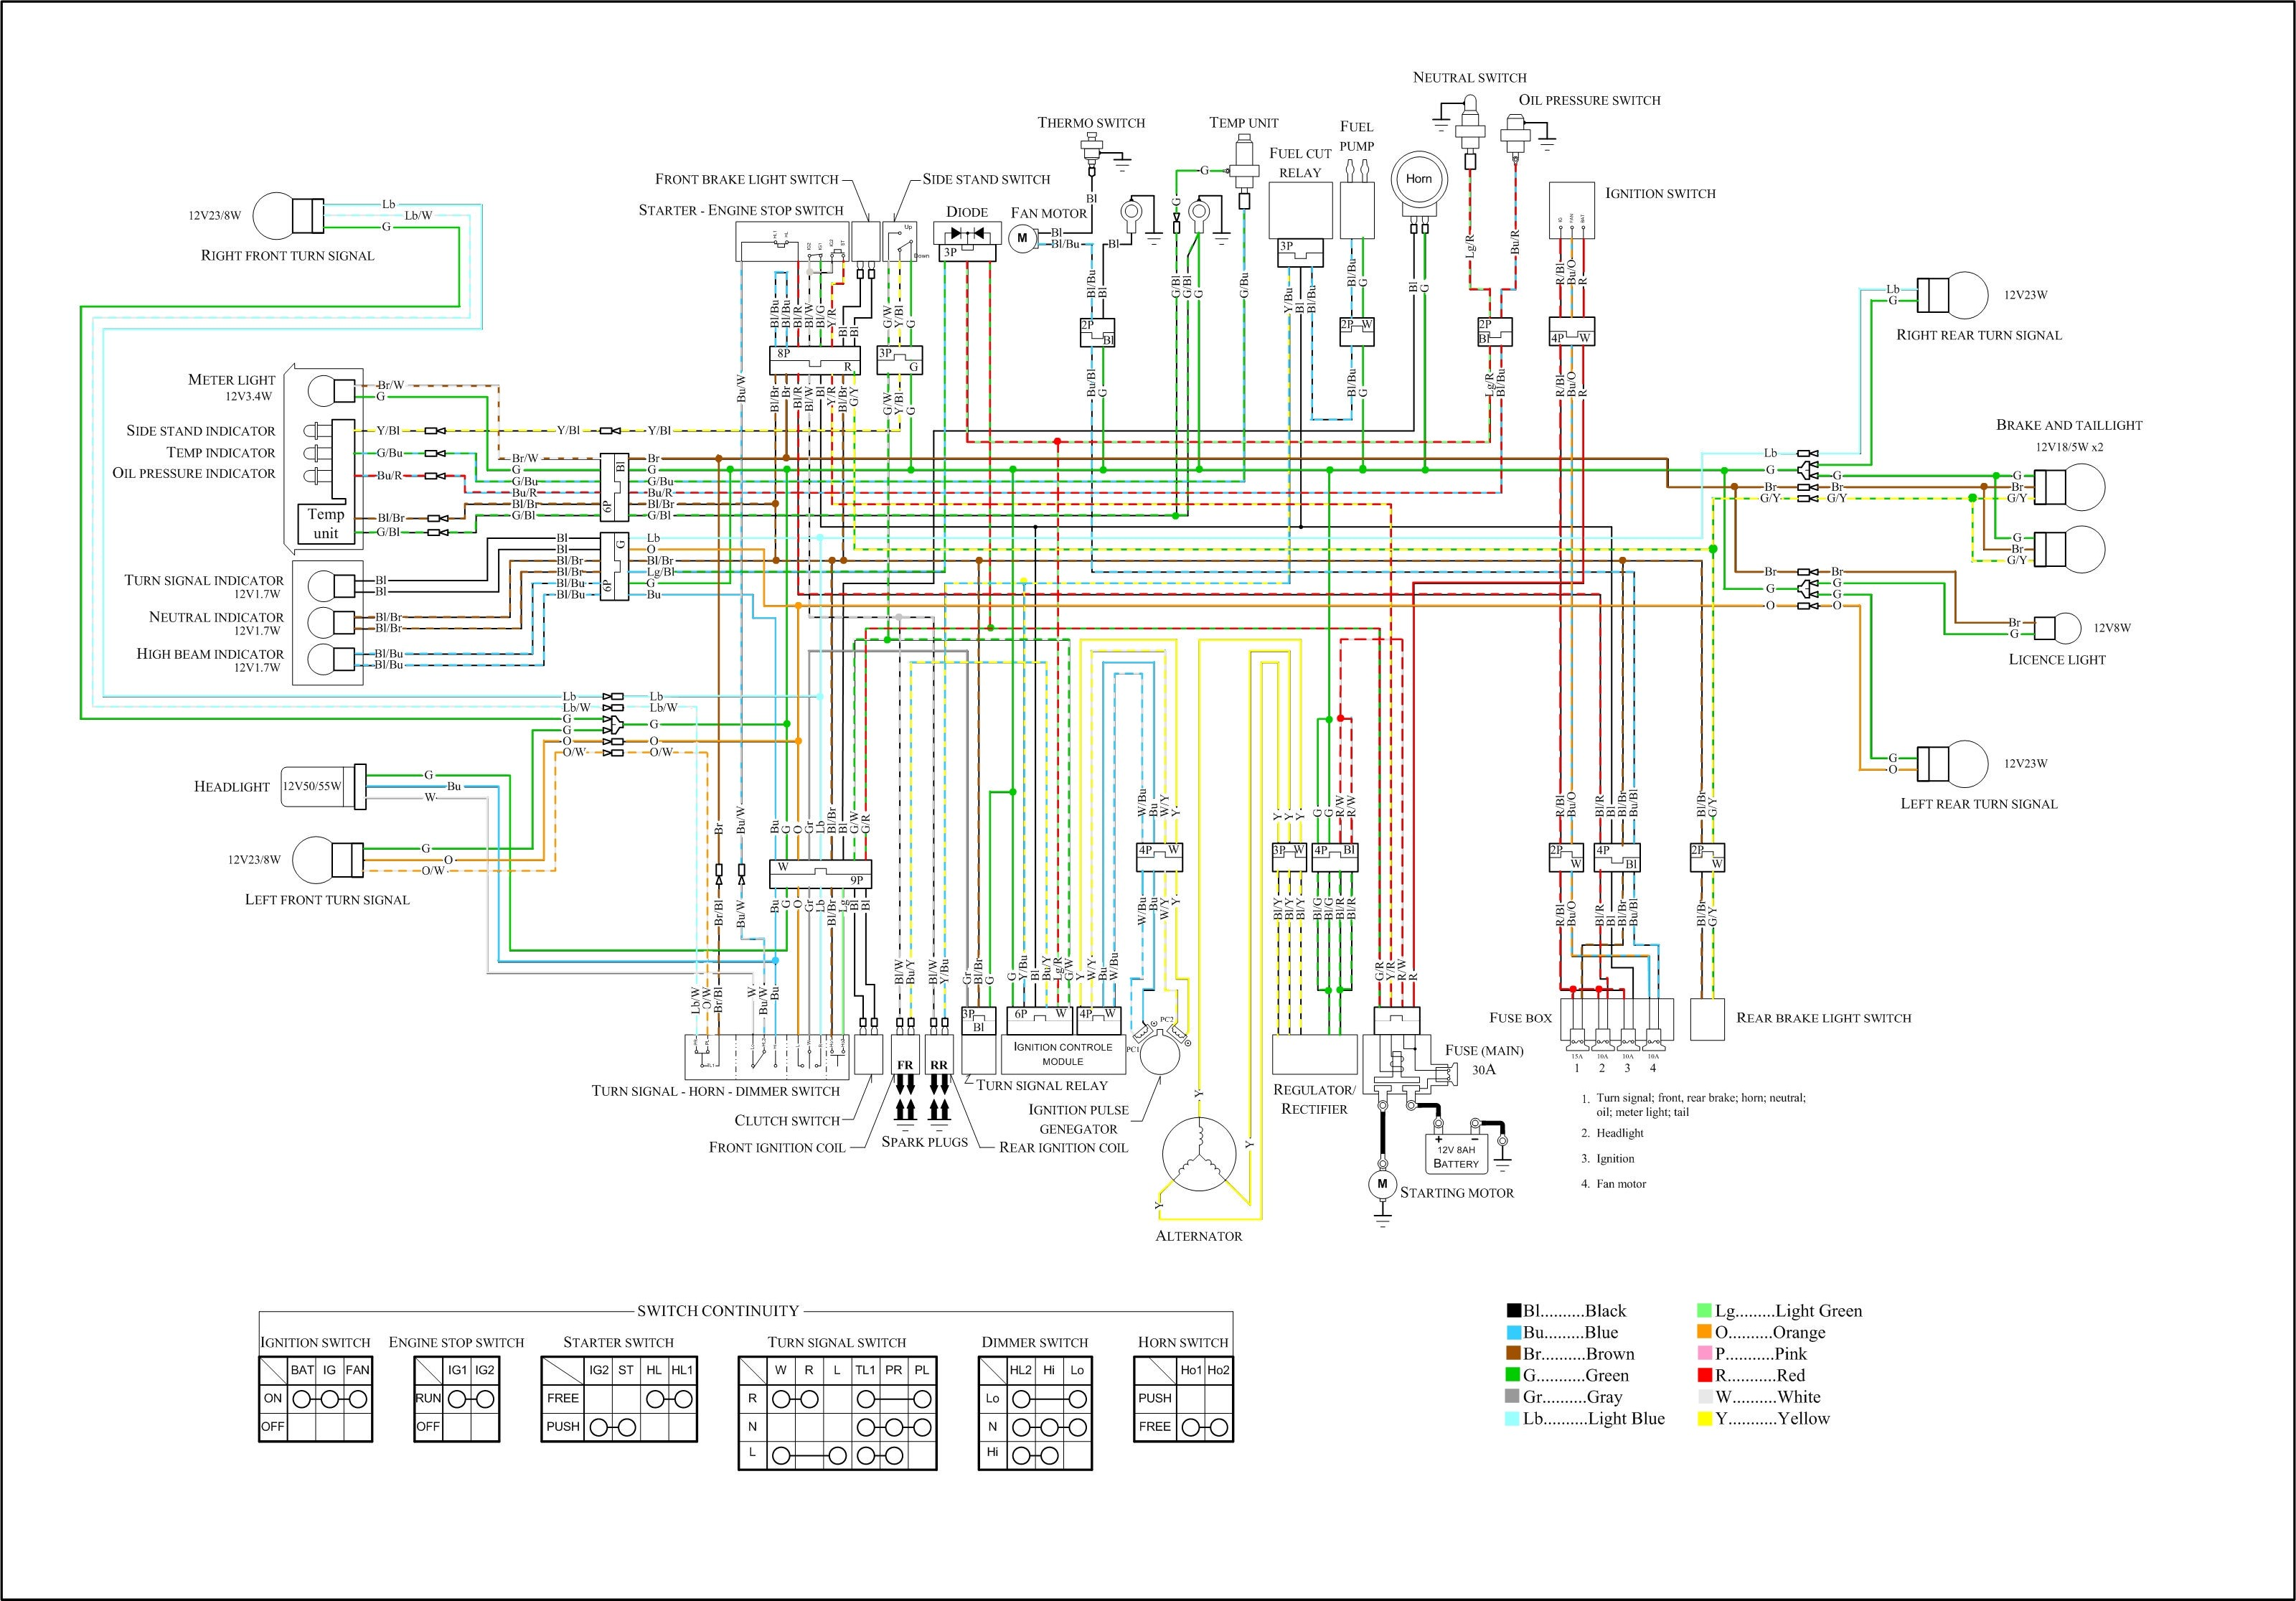 Vt700c Wiring Diagram | Online Wiring Diagram on snowmobile wiring diagram, cr wiring diagram, avalon wiring diagram, accessories wiring diagram, gl1200 wiring diagram, cb1100 wiring diagram, fjr wiring diagram, sci-fi wiring diagram, service wiring diagram, crf wiring diagram, phantom wiring diagram, renegade wiring diagram, honda wiring diagram, gl1500 wiring diagram, cmx250c wiring diagram, norton wiring diagram, motorcycle wiring diagram, gl1100 wiring diagram, crf450r wiring diagram, st wiring diagram,